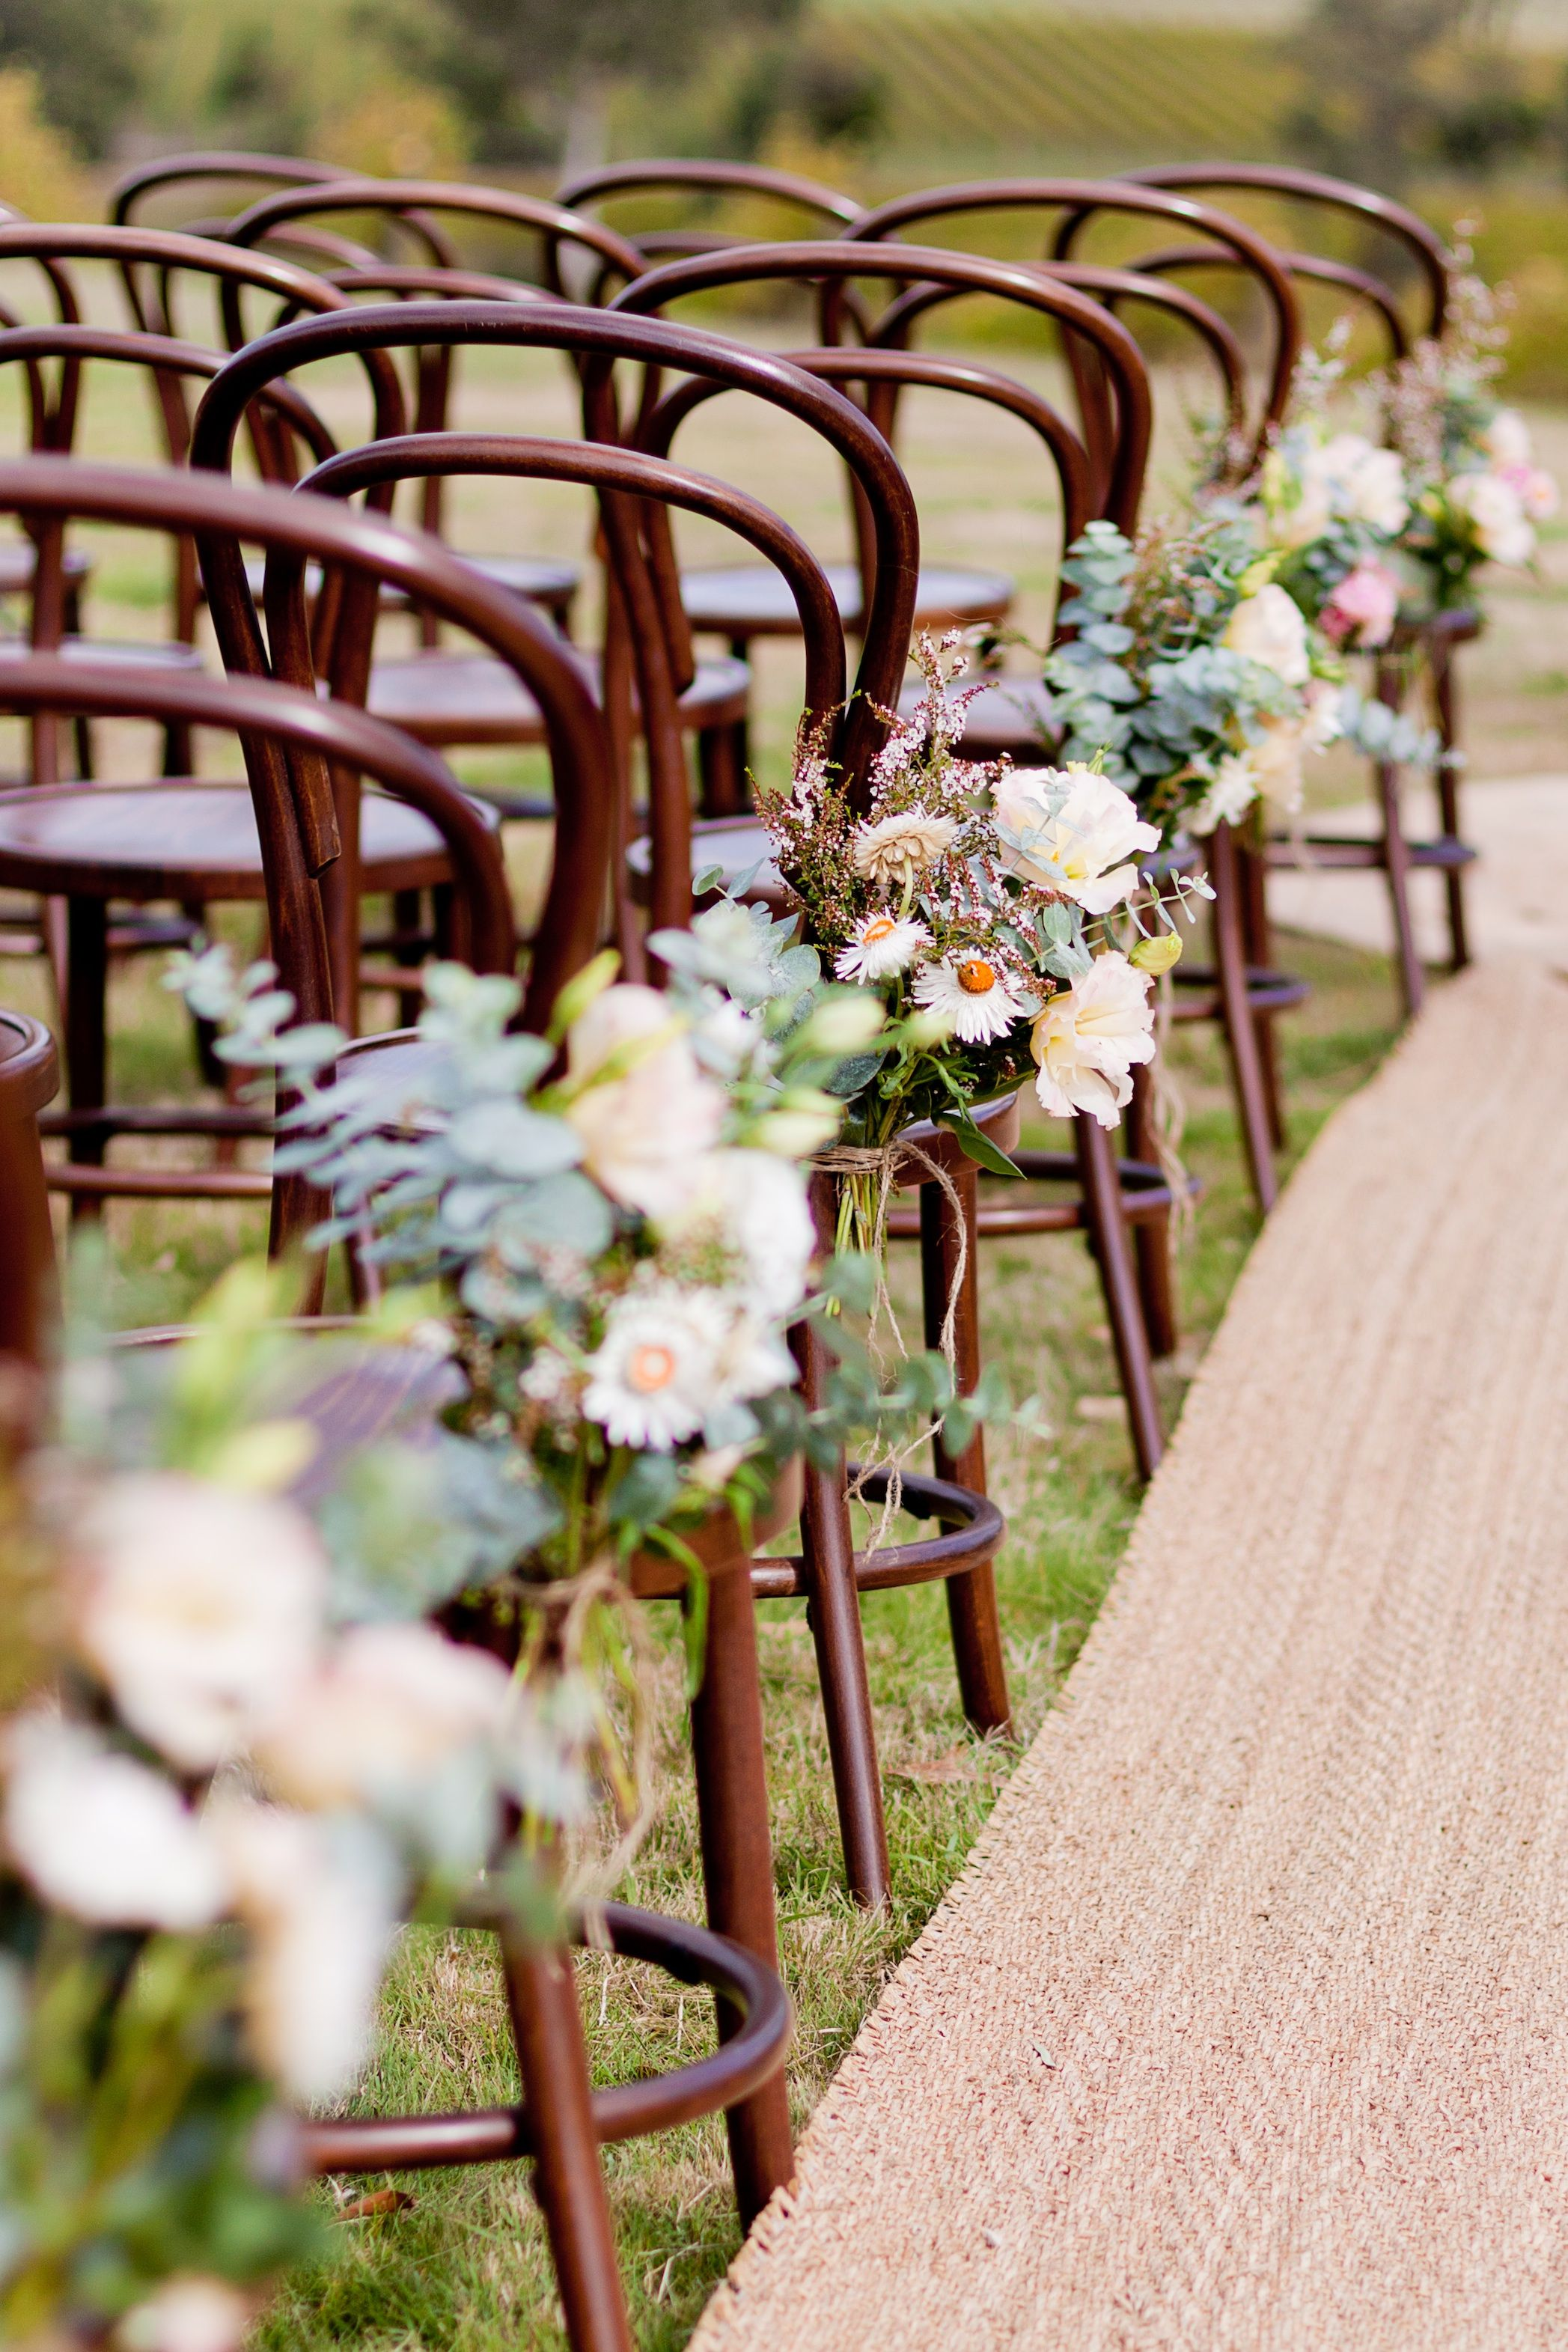 Dream Wedding · Like These Wooden Chairs ...